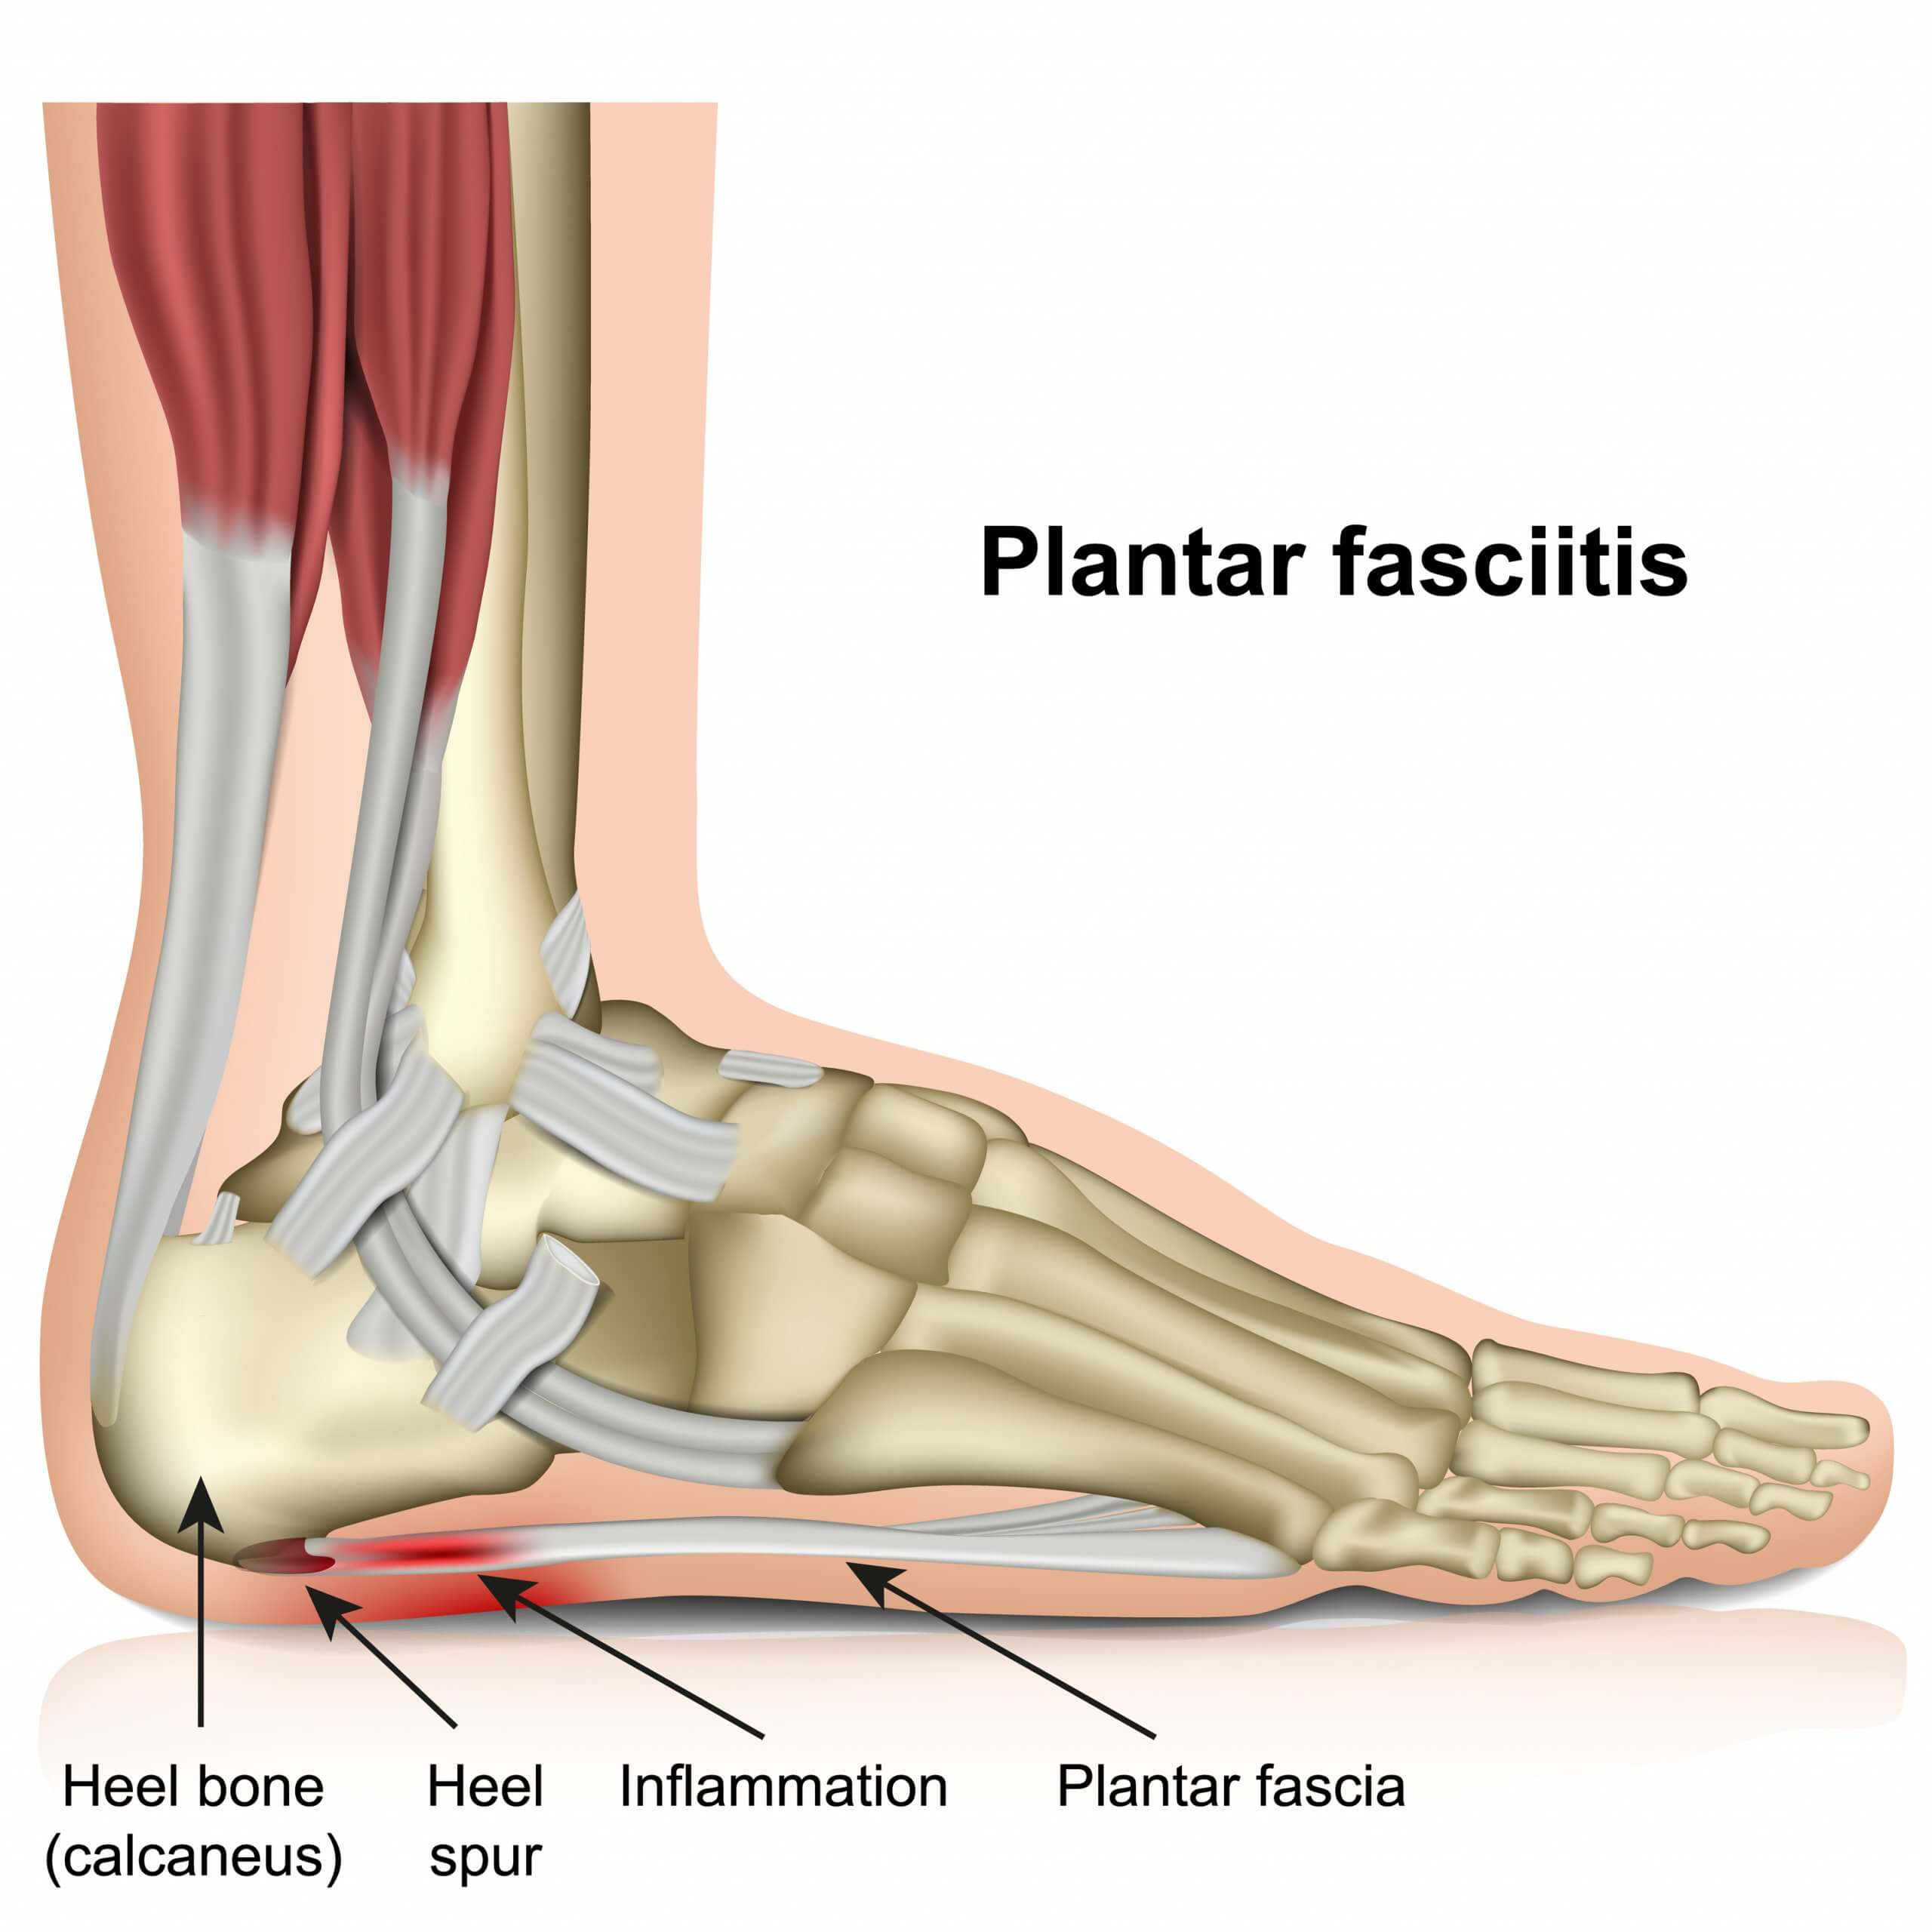 Image of a foot affected by plantar fasciitis